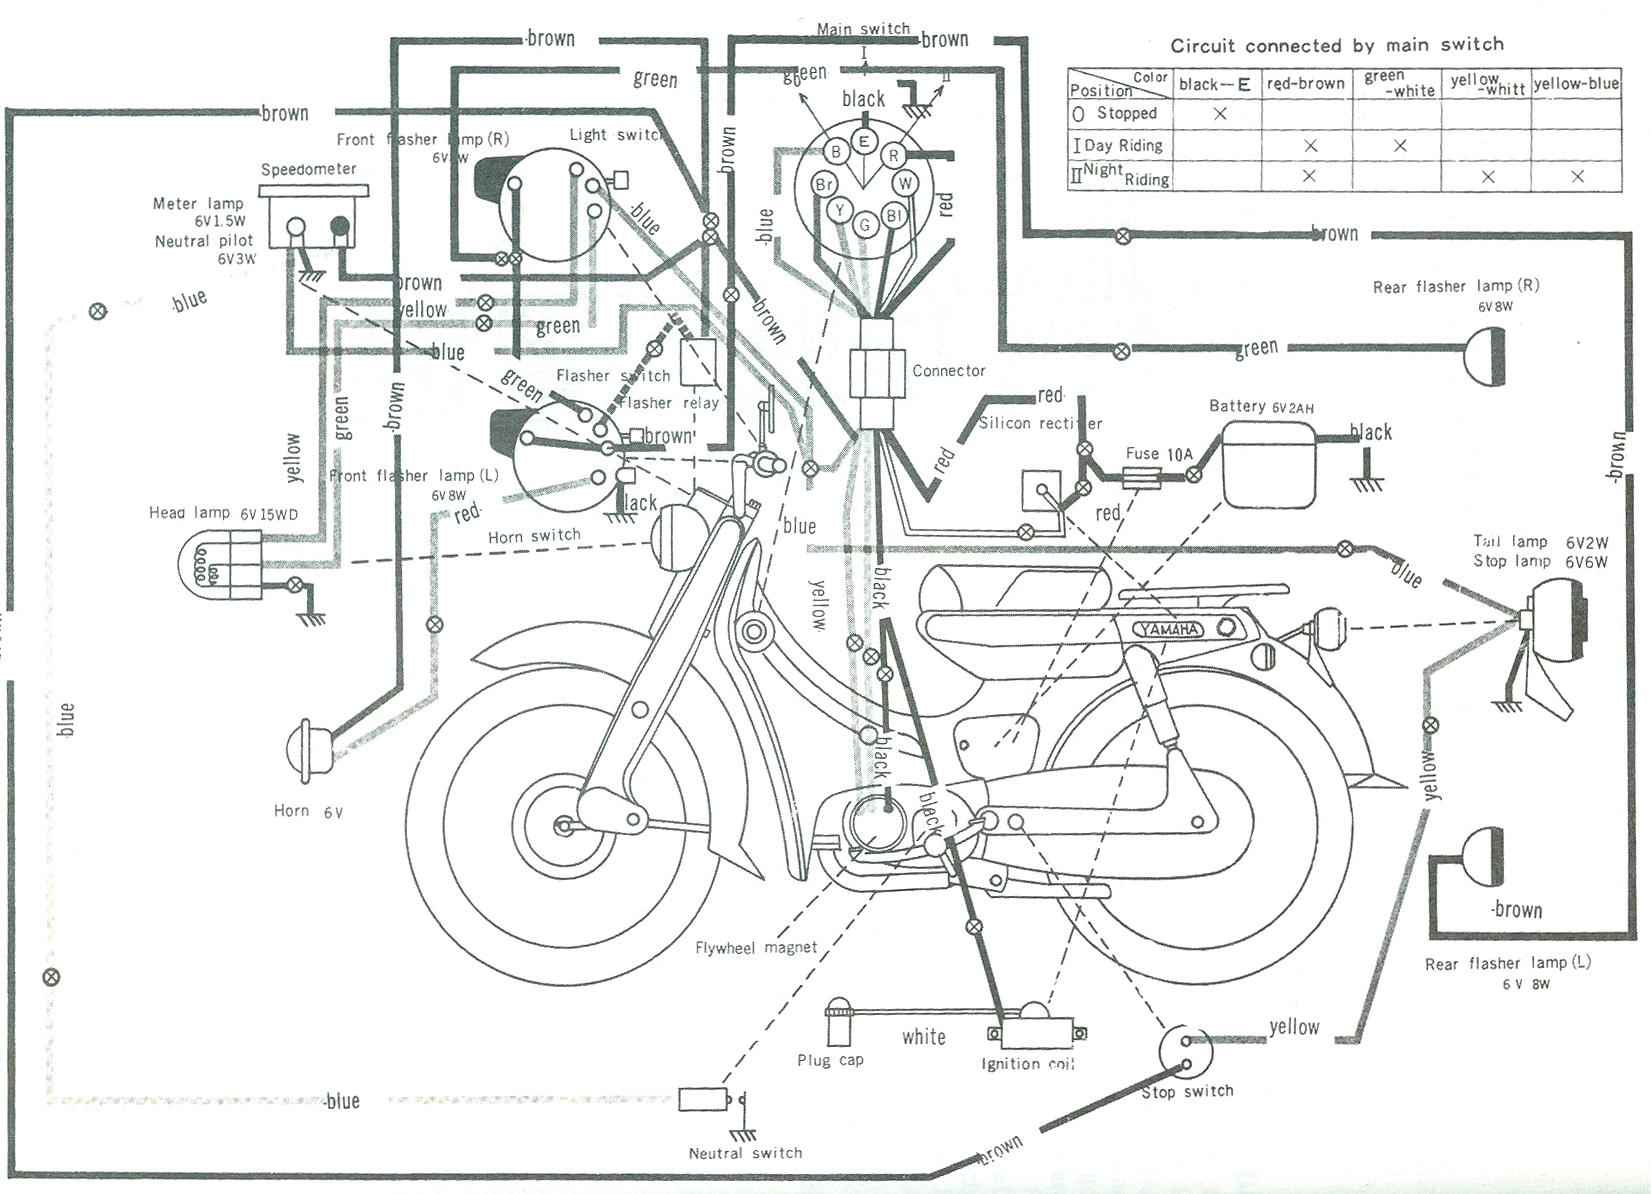 Wiring Diagram Yamaha V50 $ Download-app.co